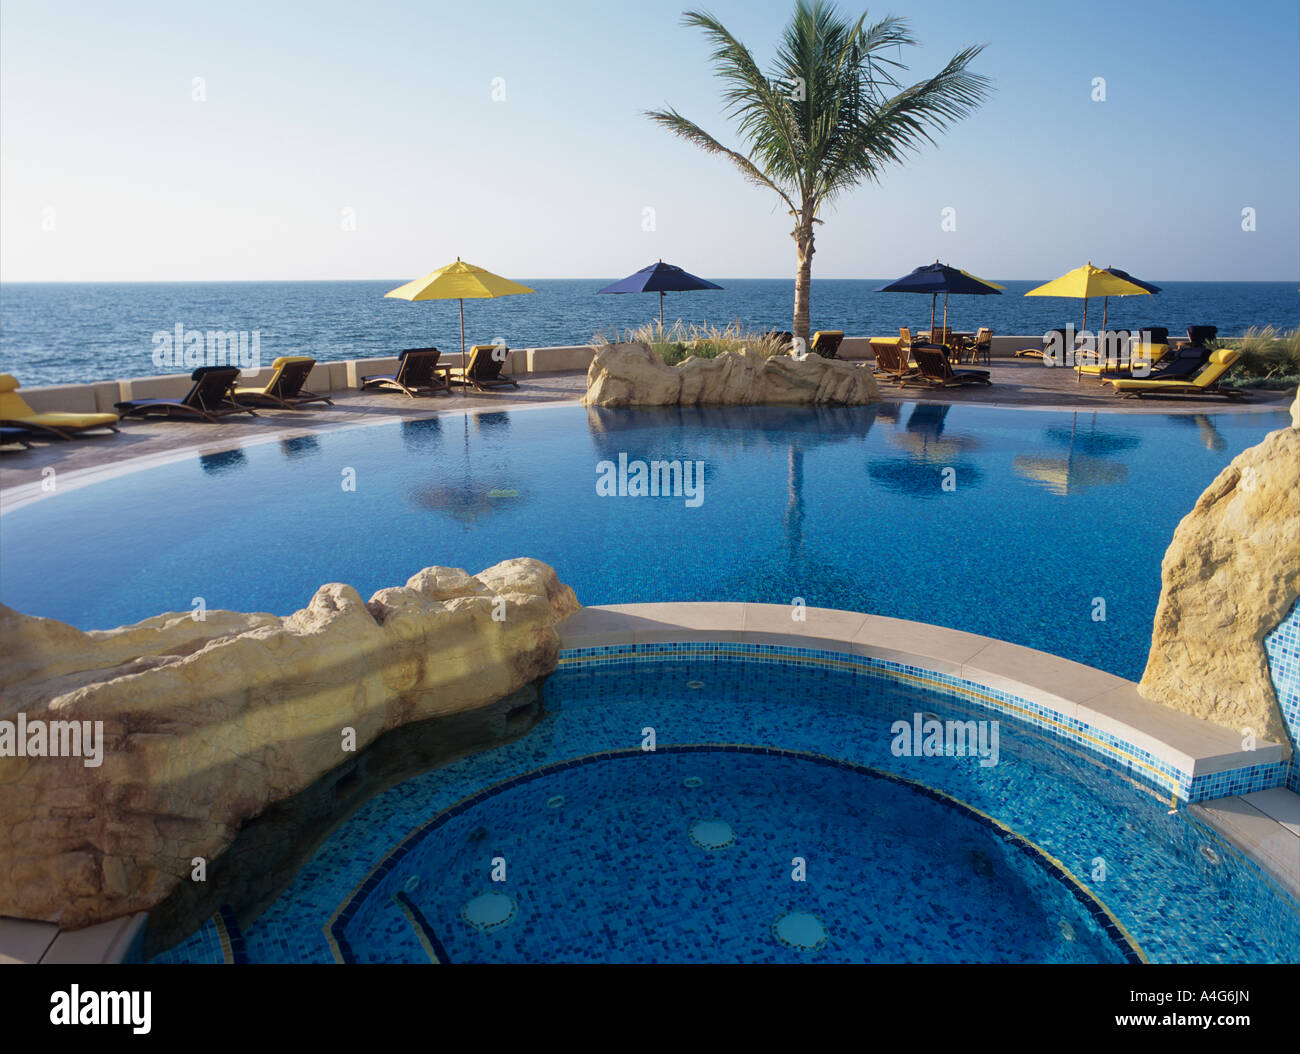 Pool And Jacuzzi Pool And Jacuzzi In Jumeirah Beach Resort And Burj Al Arab Dubai